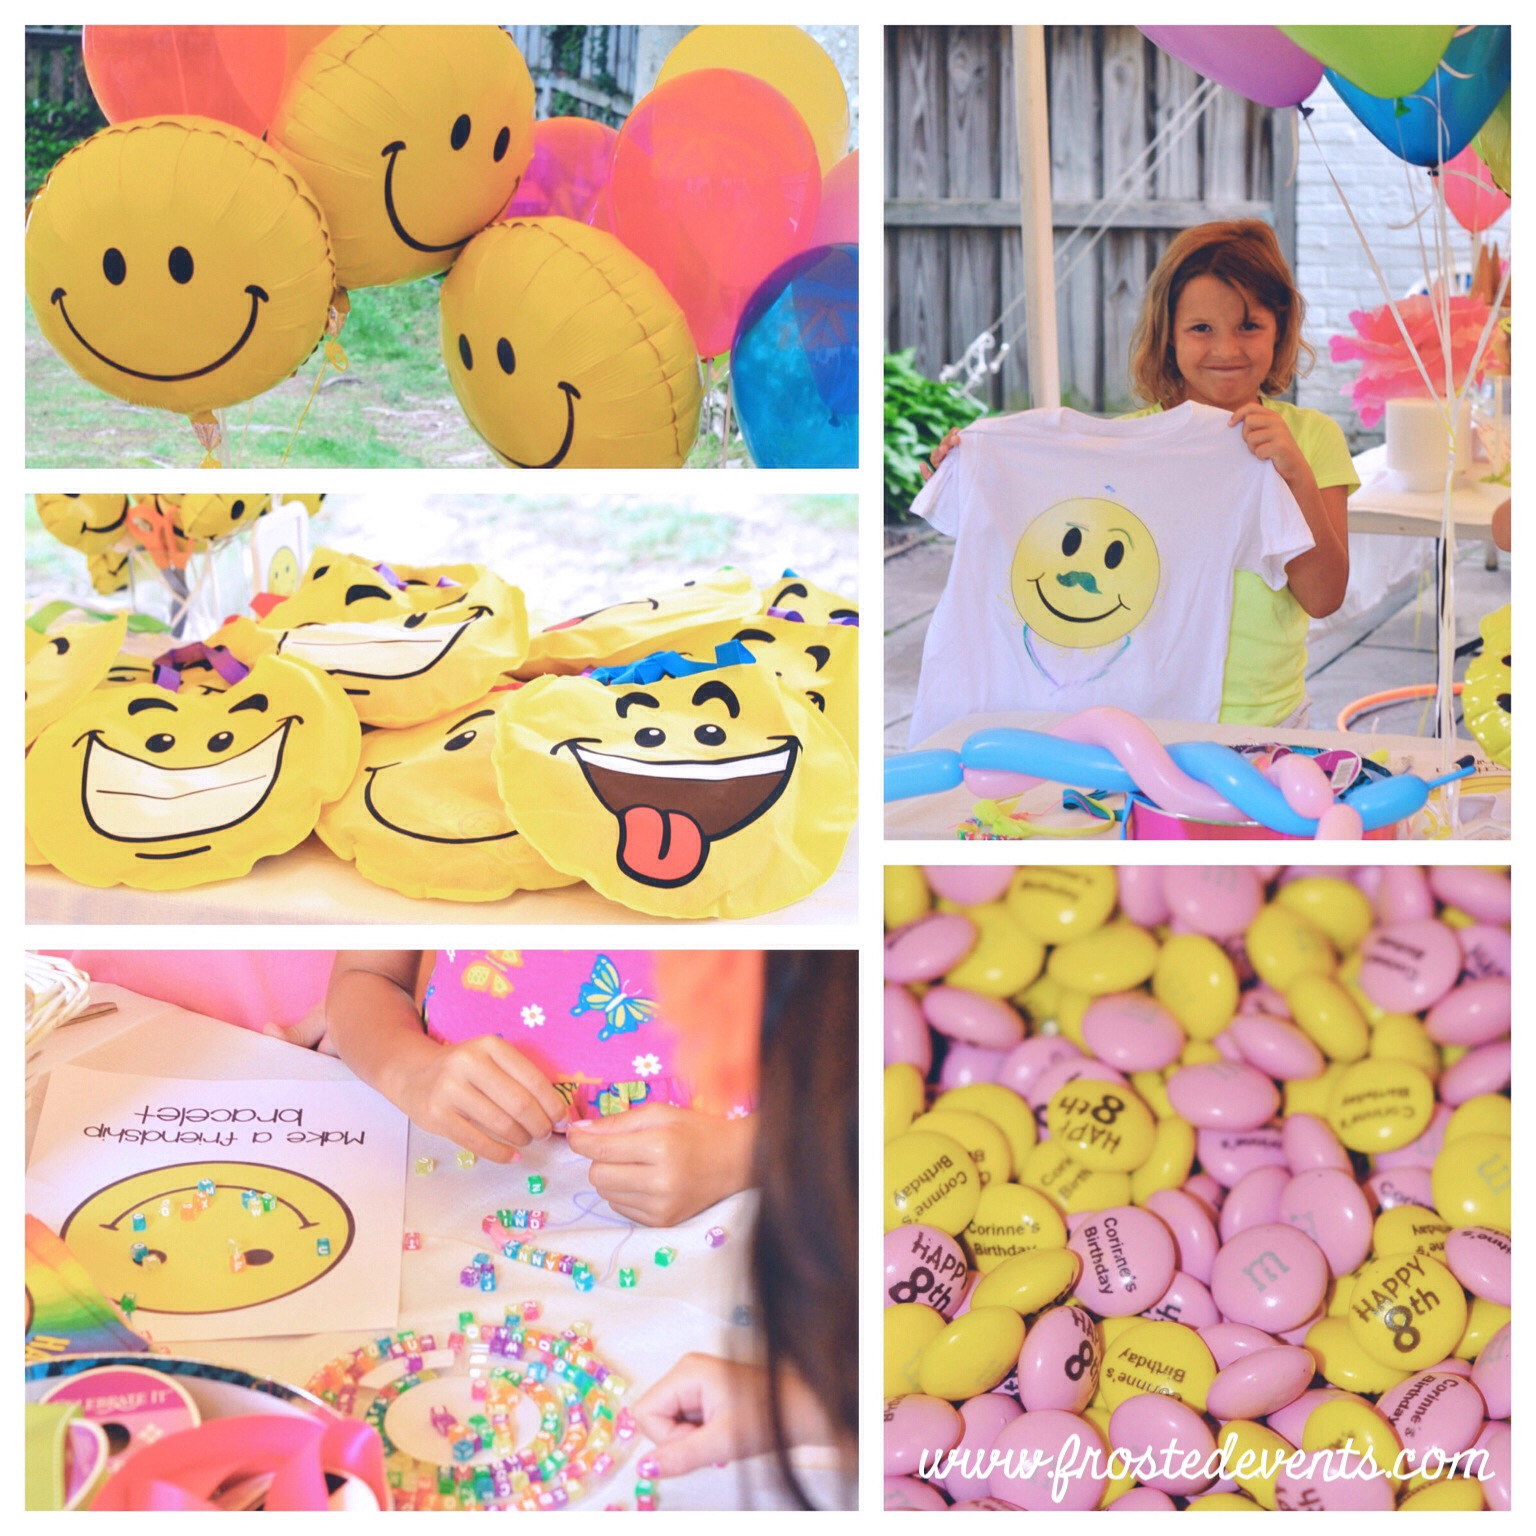 Emoji Party Ideas -Happy Face Smile! Birthday Party Frosted Events www.frostedevents.com